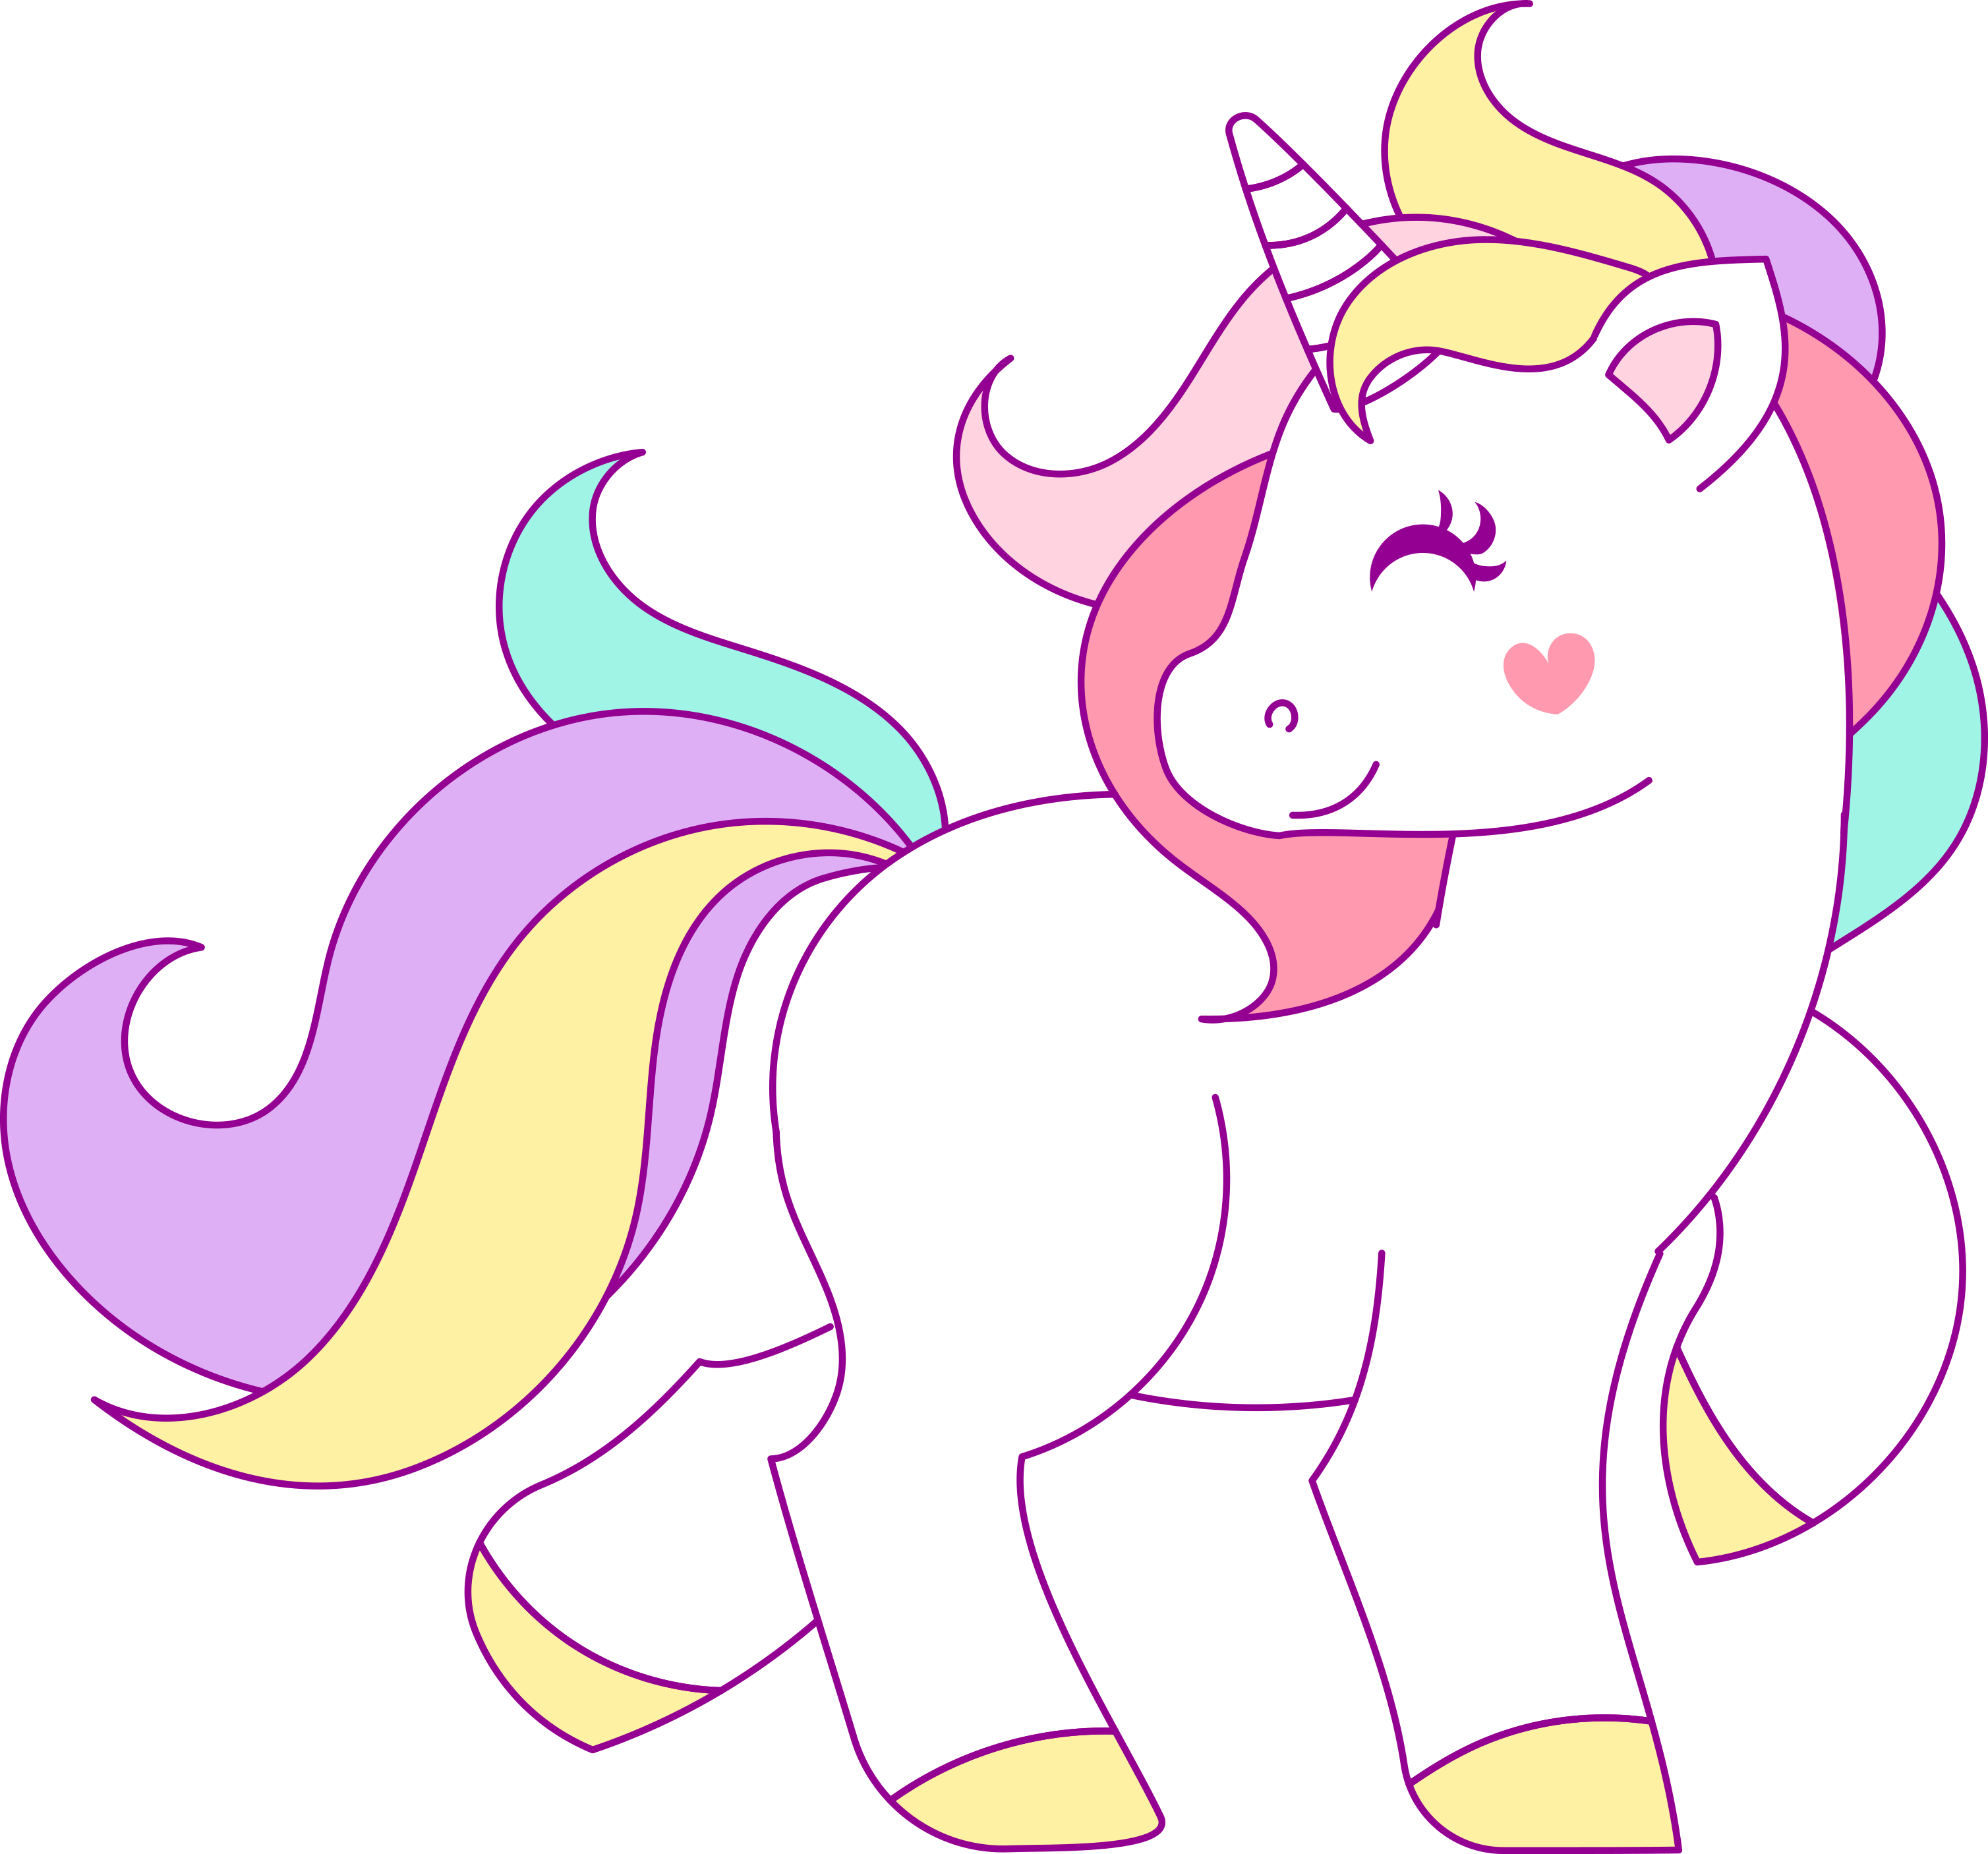 Nicorn beautiful unicorn transparent.